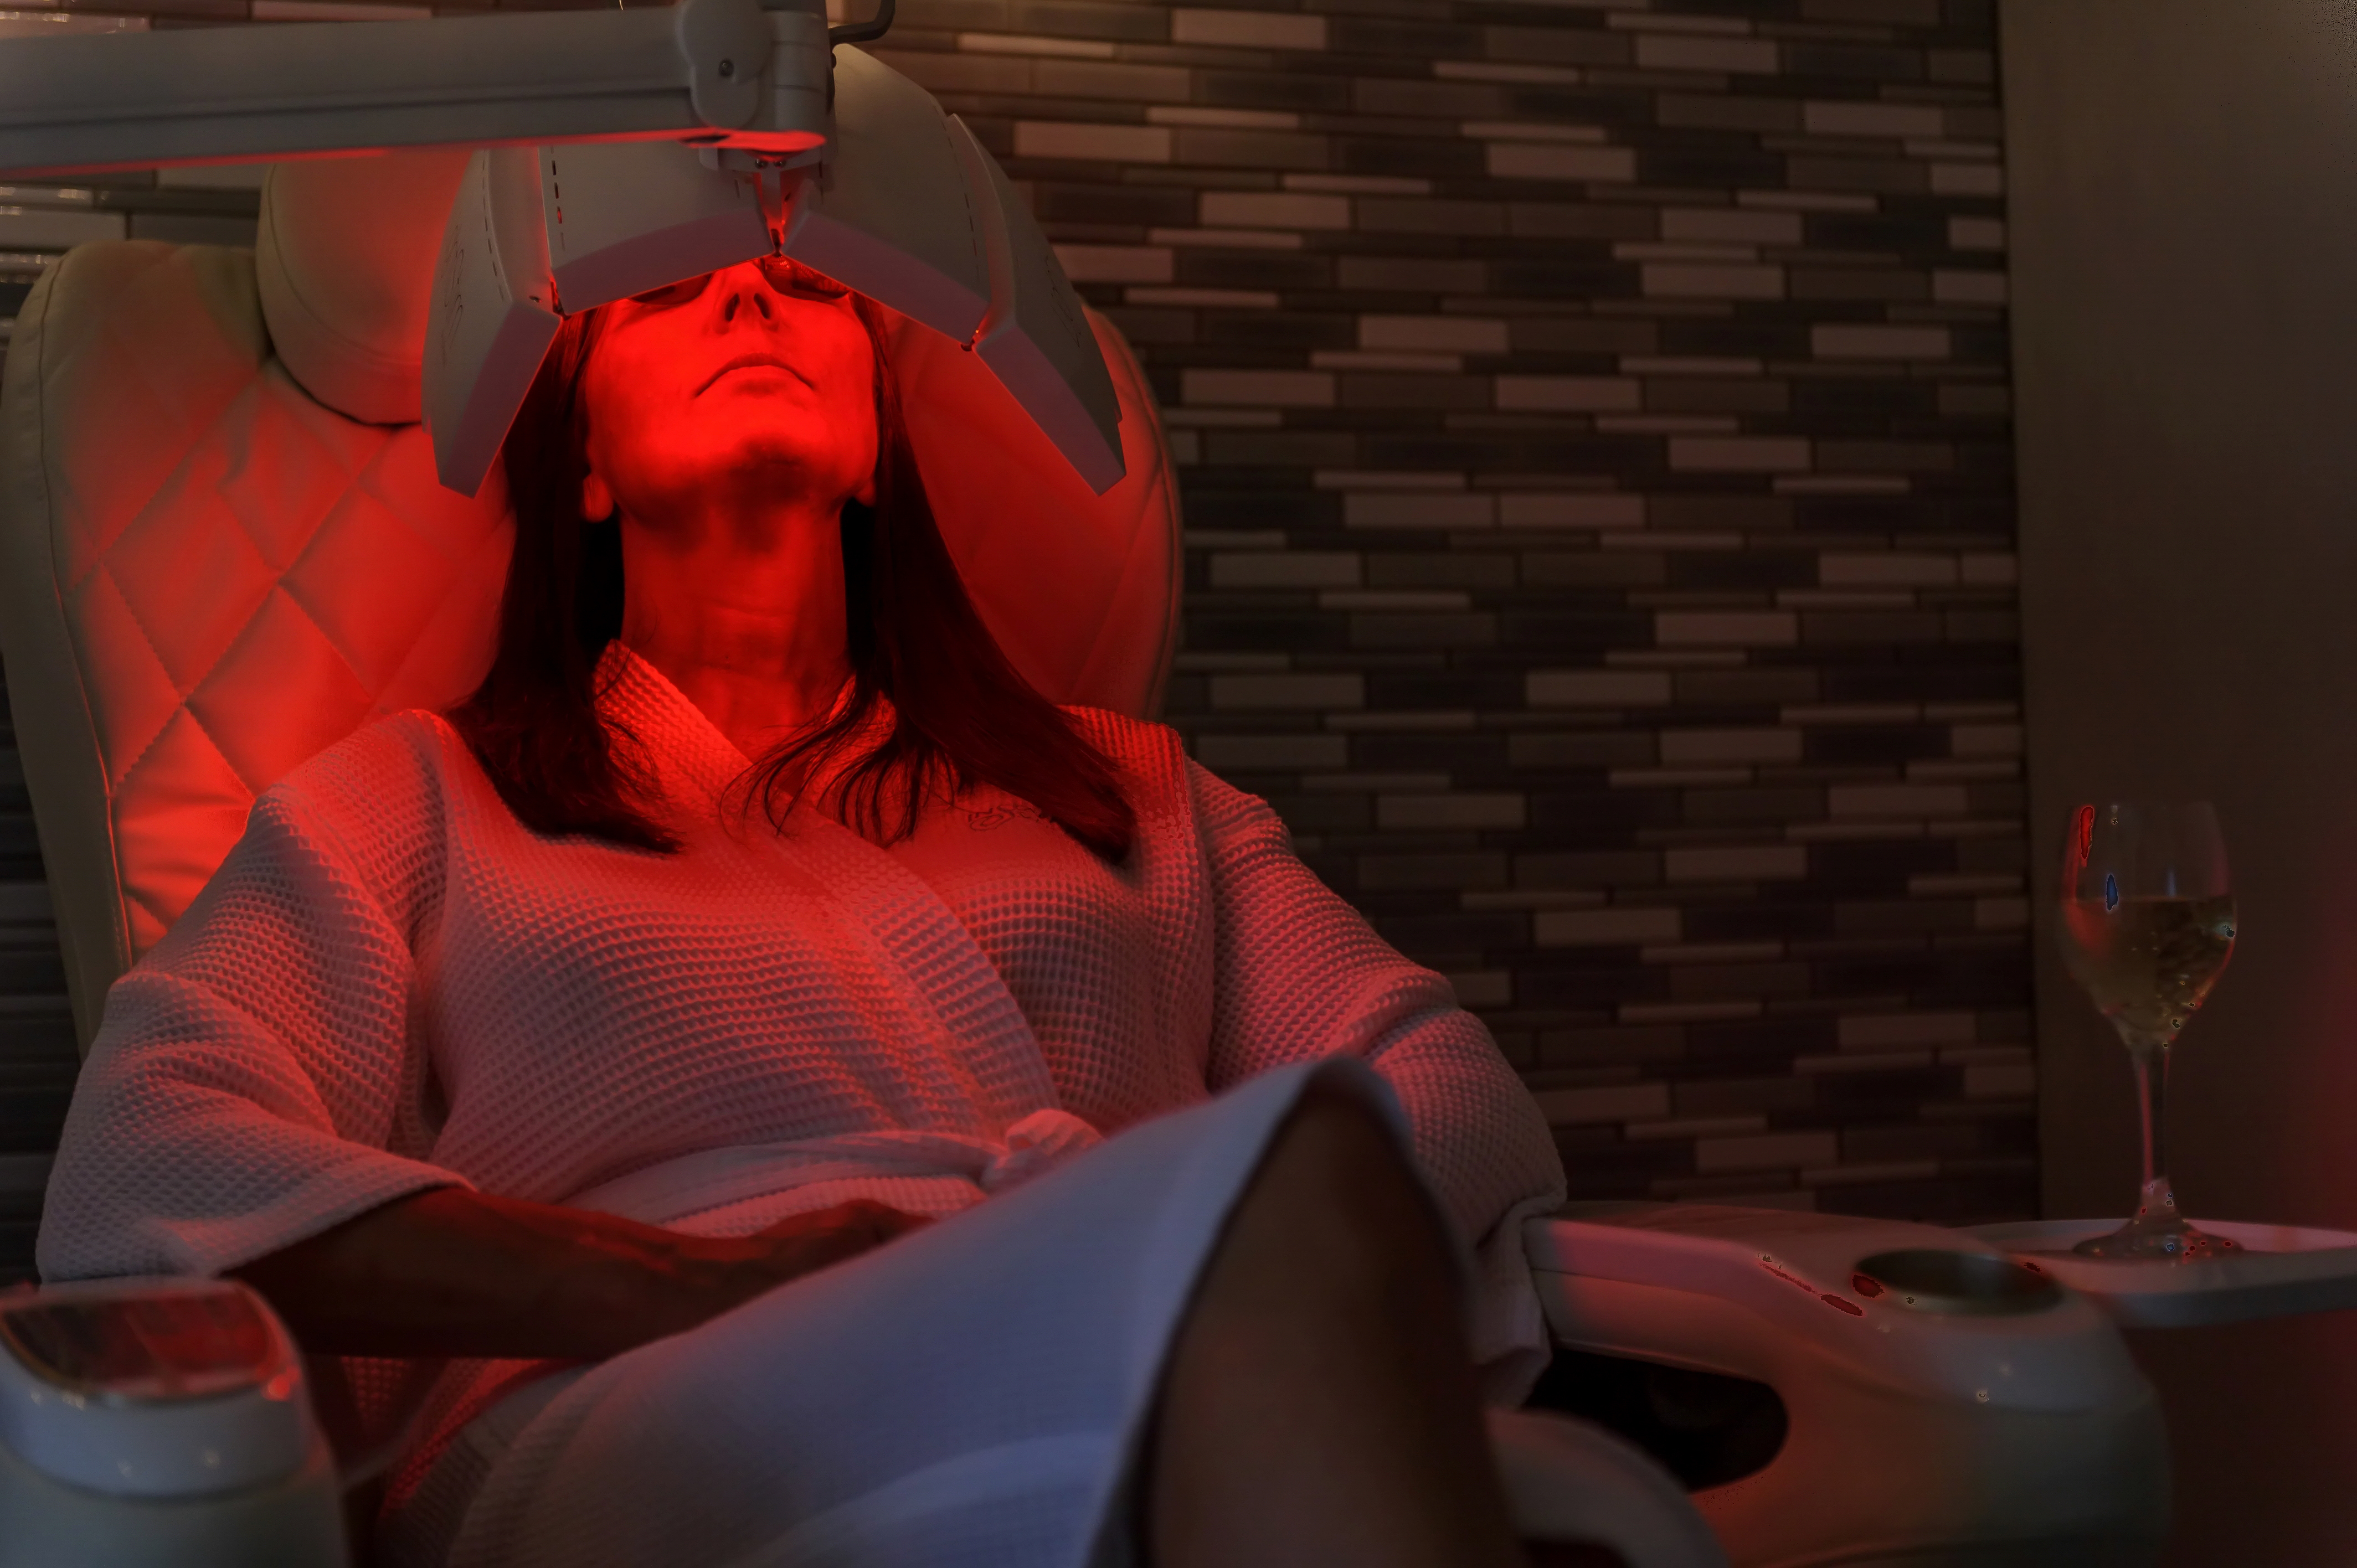 LED Light Treatment with Pedicure